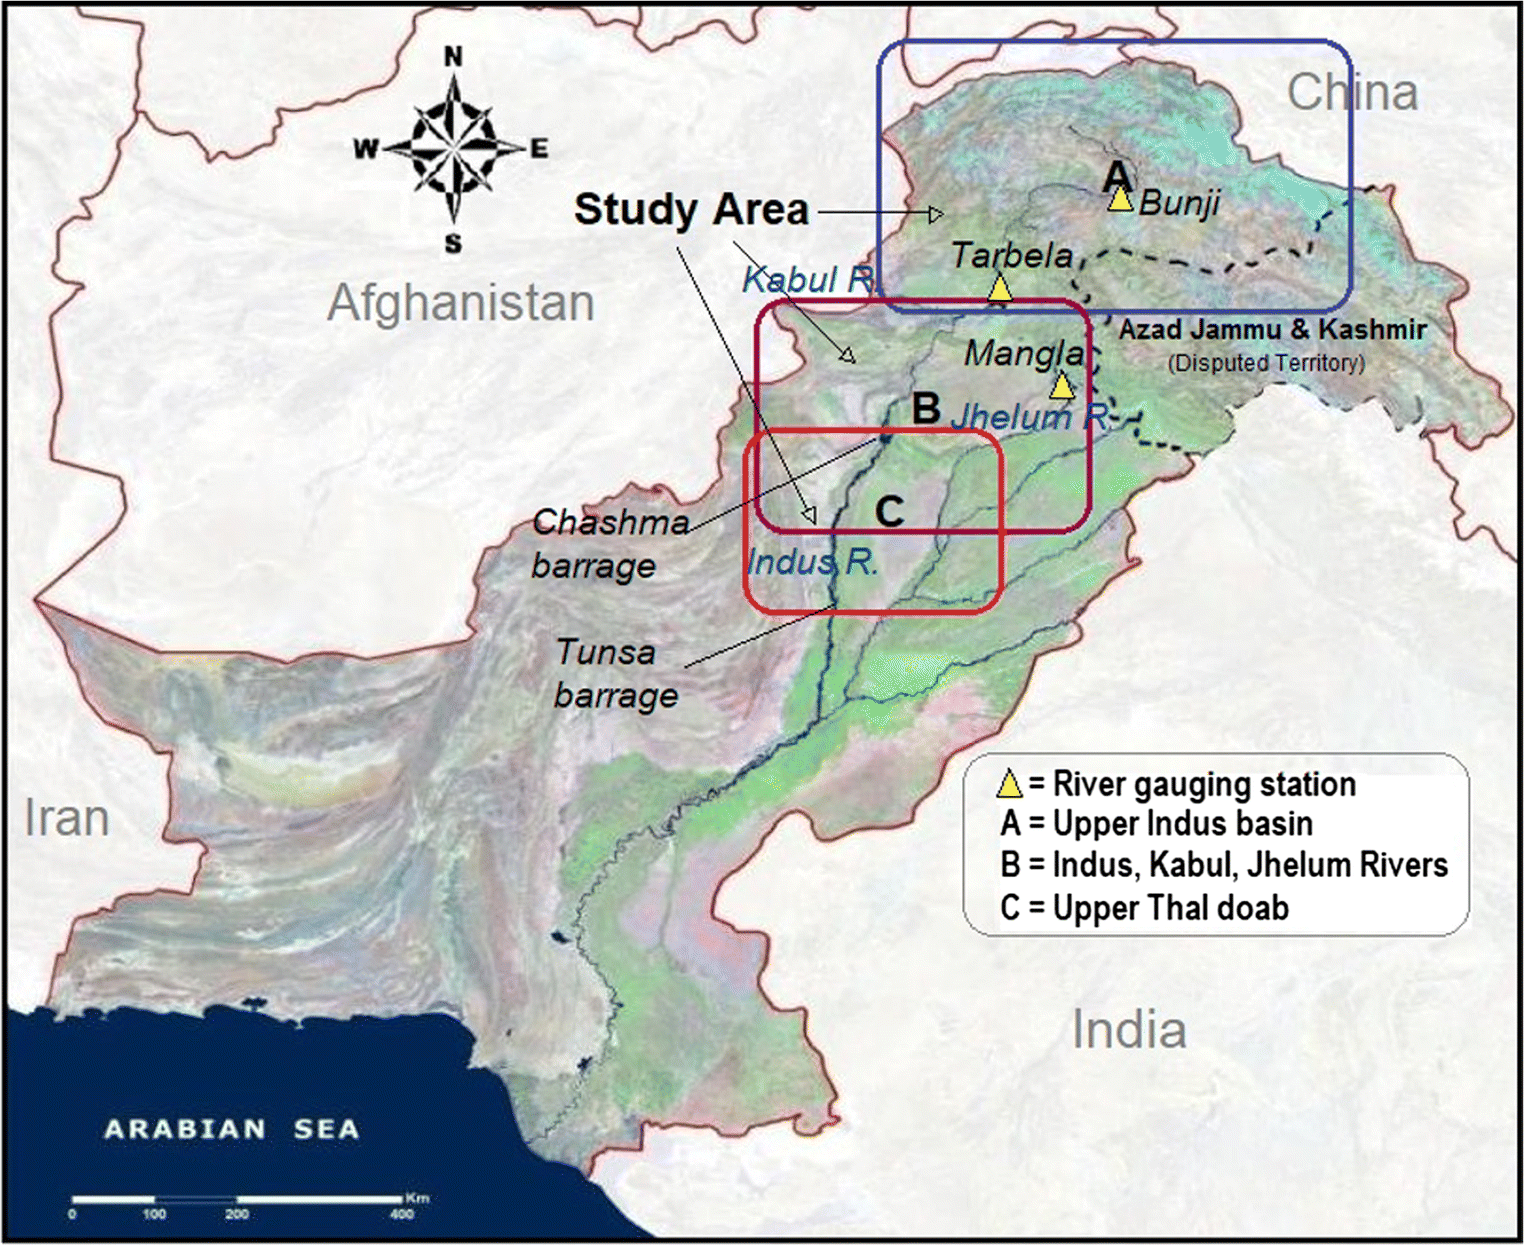 Upstream and downstream response of water resource regimes to ... on krishna river on map, aral sea on map, irrawaddy river on map, japan on map, persian gulf on map, deccan plateau on map, jordan river on map, himalayan mountains on map, bangladesh on map, kashmir on map, gulf of khambhat on map, gobi desert on map, ganges river on map, indian ocean on map, himalayas on map, yellow river on map, great indian desert on map, yangzte river on map, eastern ghats on map, lena river on map,